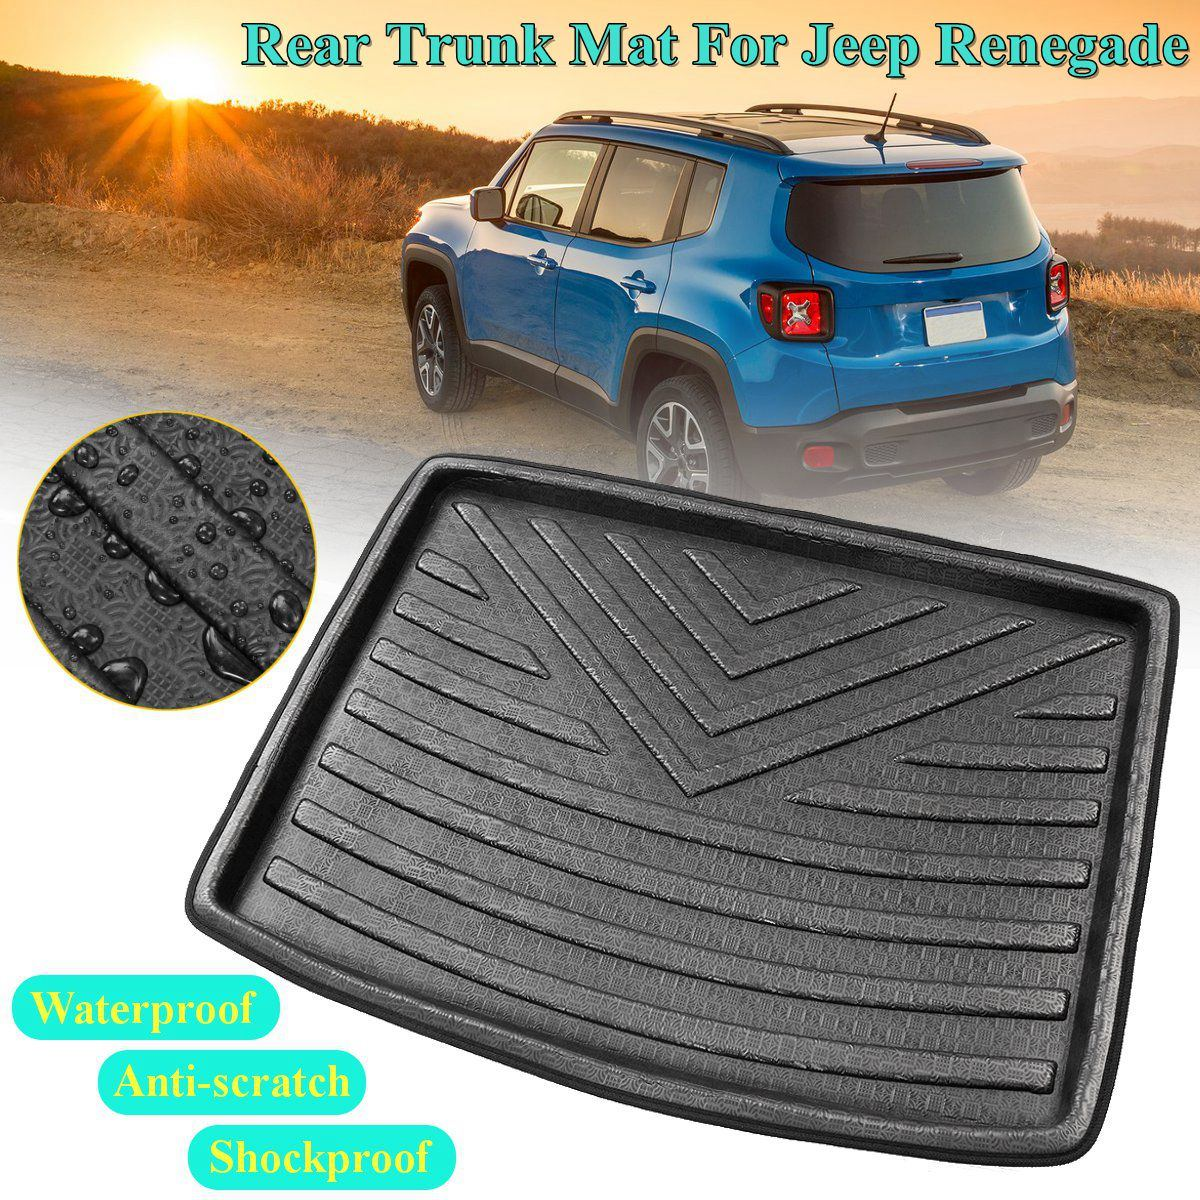 Brand New Car Boot Cargo Liner Tray Rear Trunk Floor Mat Waterproof For Jeep Renegade 2014 2015 2016 2017 2018 Anti slip 1piece|  - title=